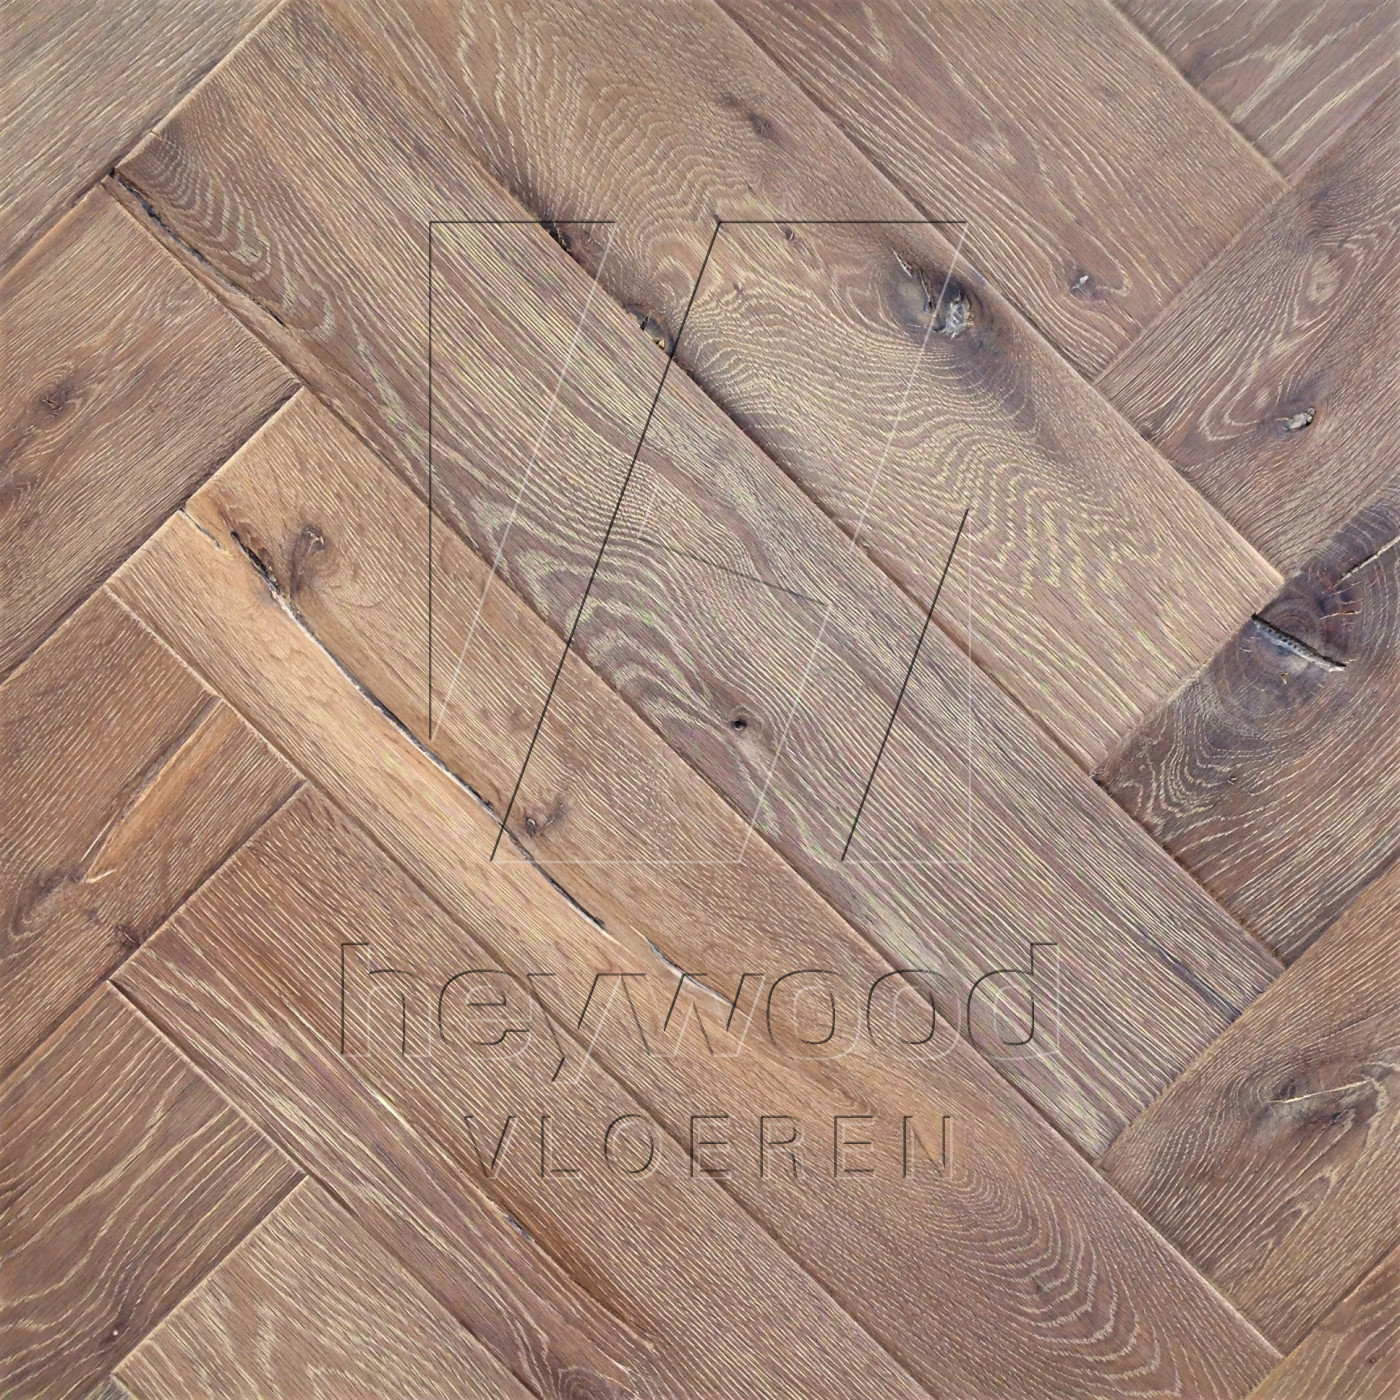 Antique Herringbone 'Cerro Torre' in Herringbone of Pattern & Panel Floors